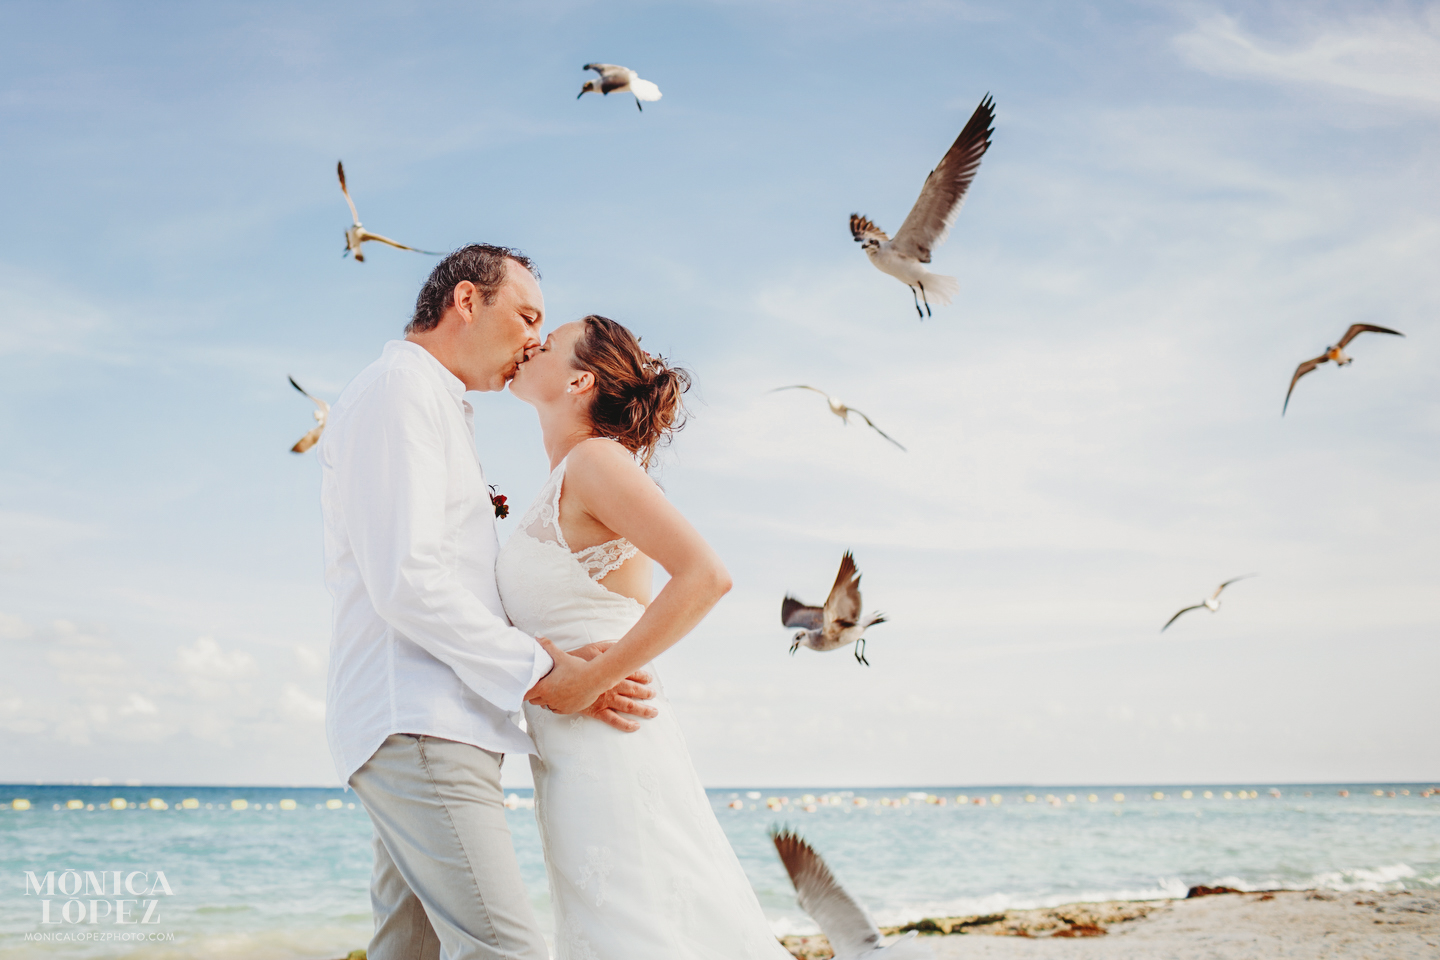 Playa del Carmen Elopement by Monica Lopez Photography